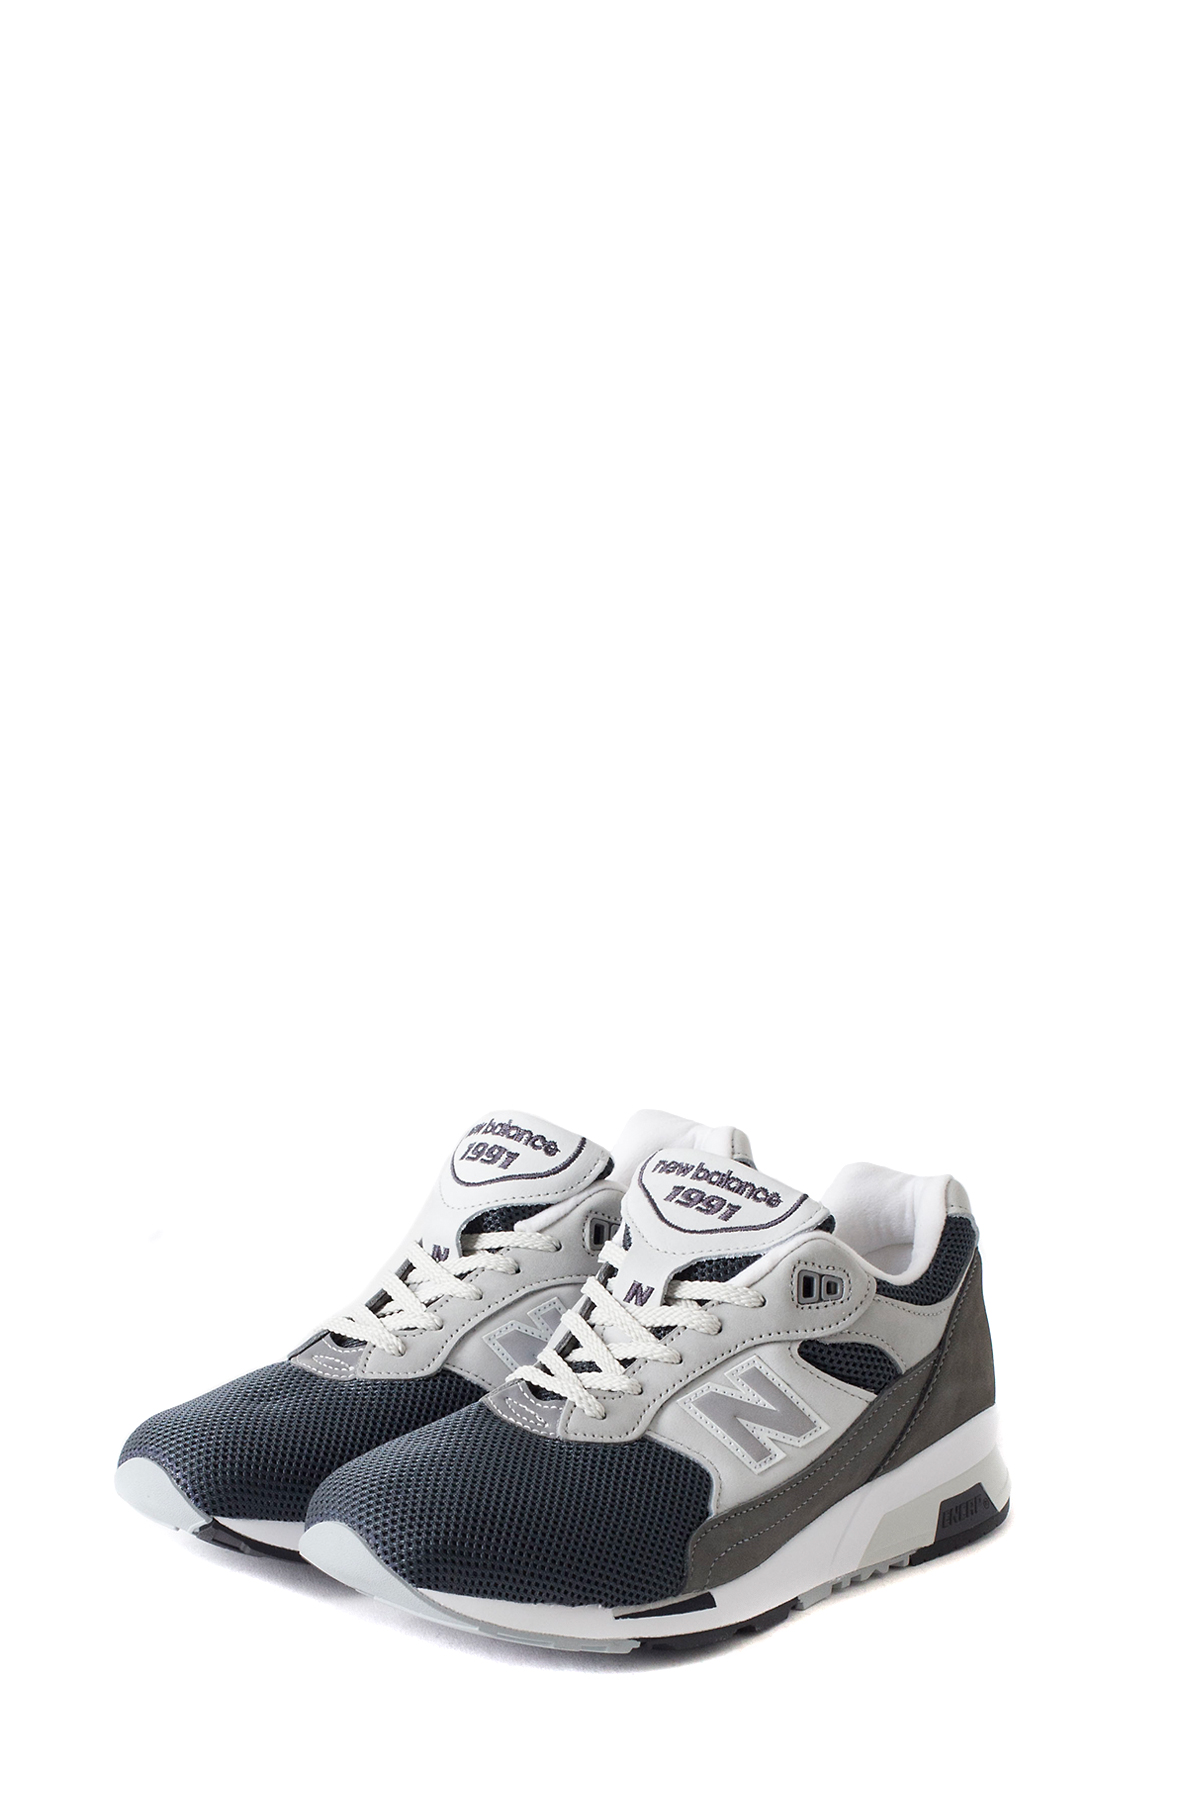 New Balance : M1991XG (Grey)